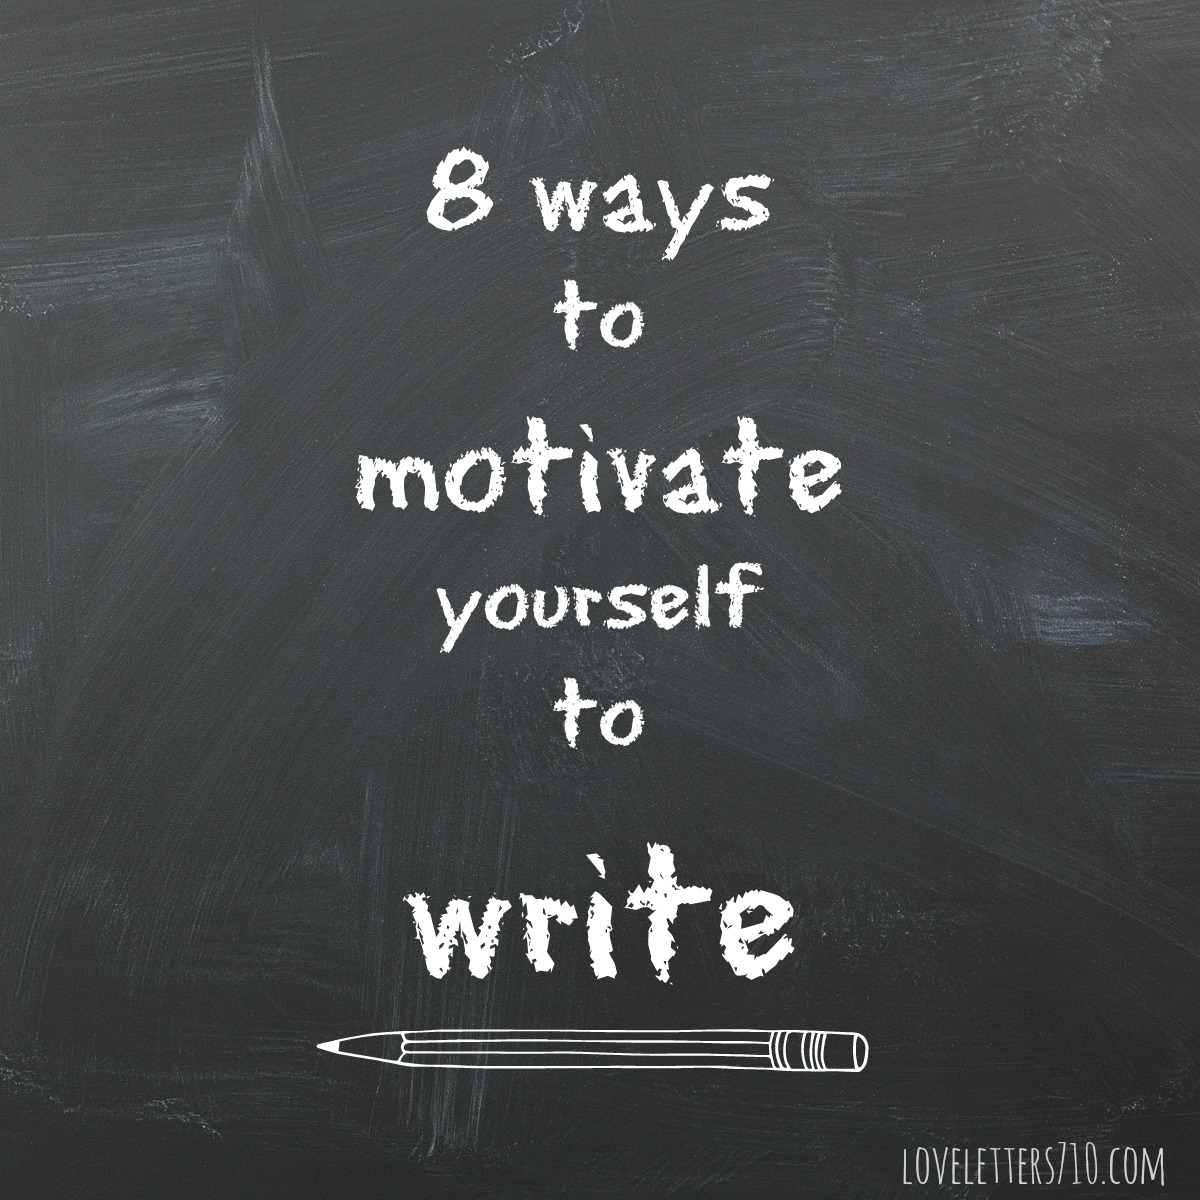 How to motivate yourself to write a book